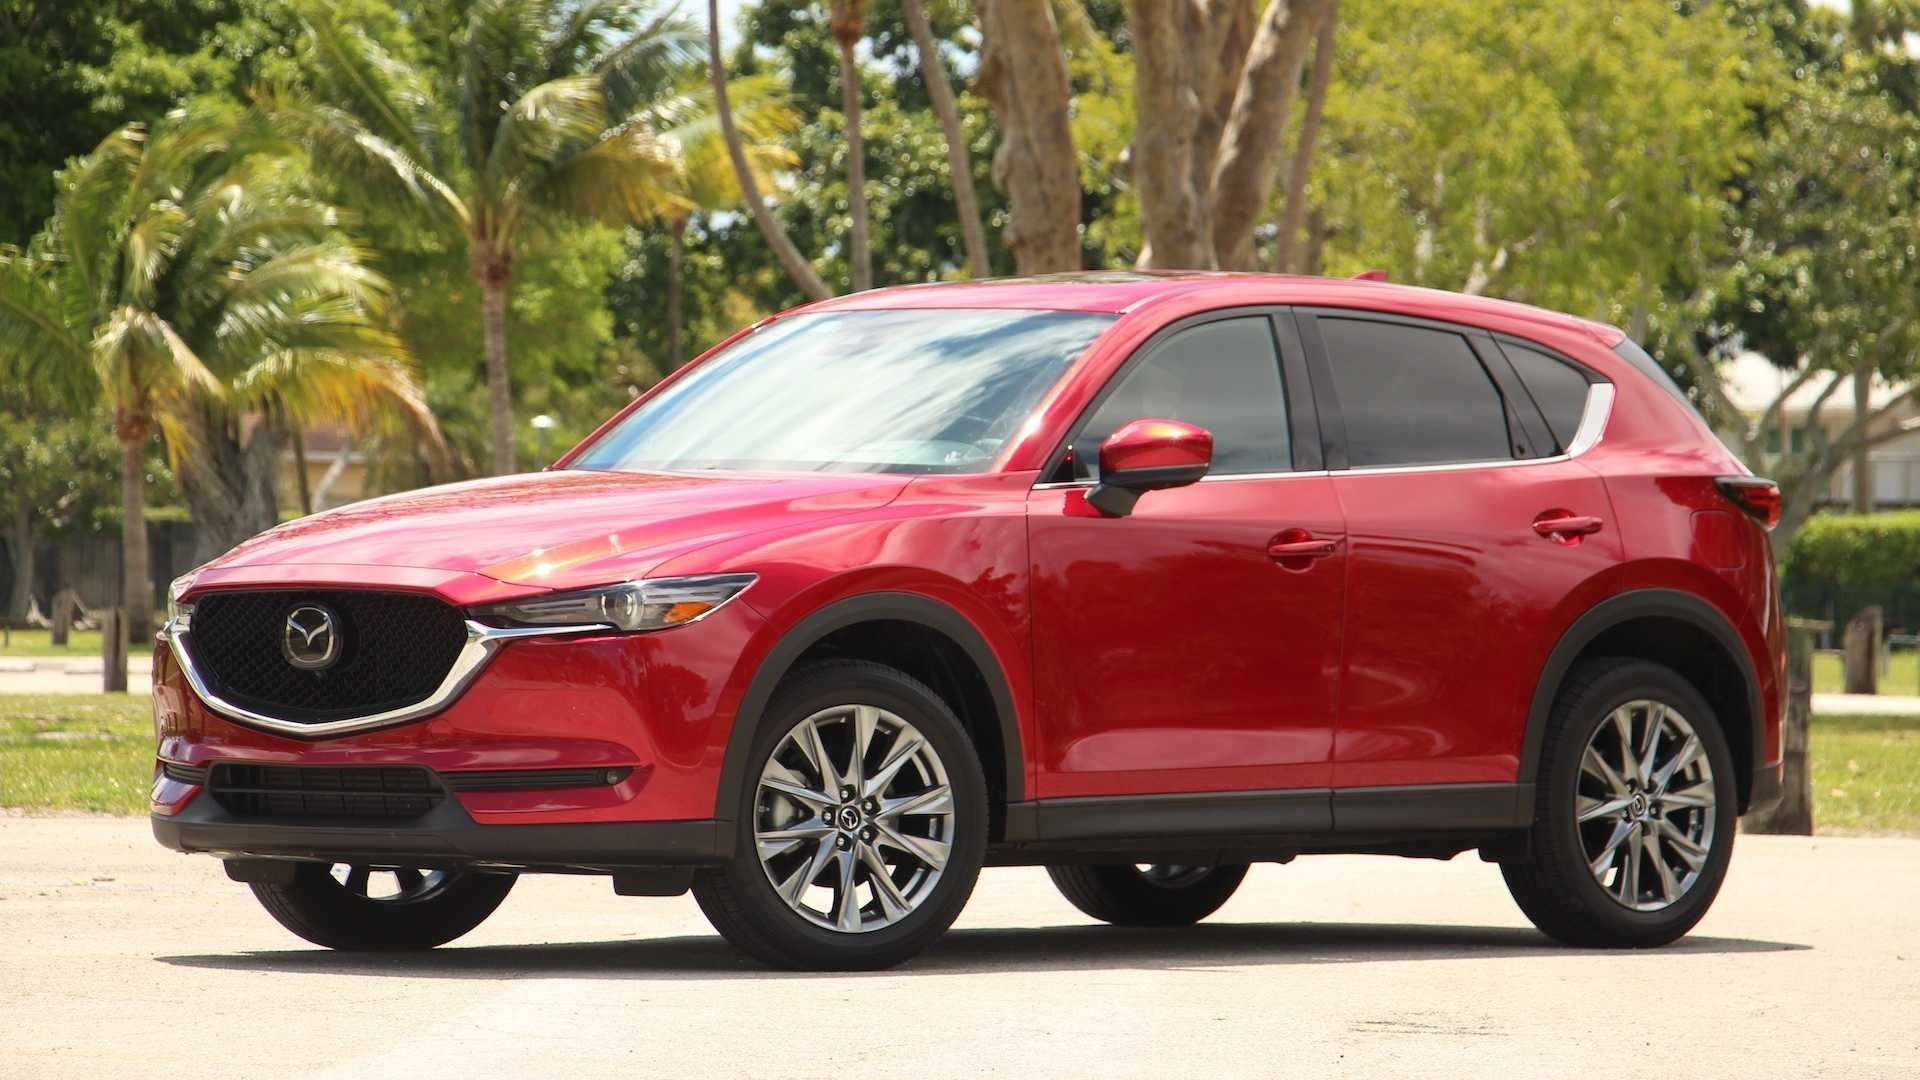 16 Gallery of When Will 2020 Mazda Cx 5 Be Released Specs and Review with When Will 2020 Mazda Cx 5 Be Released